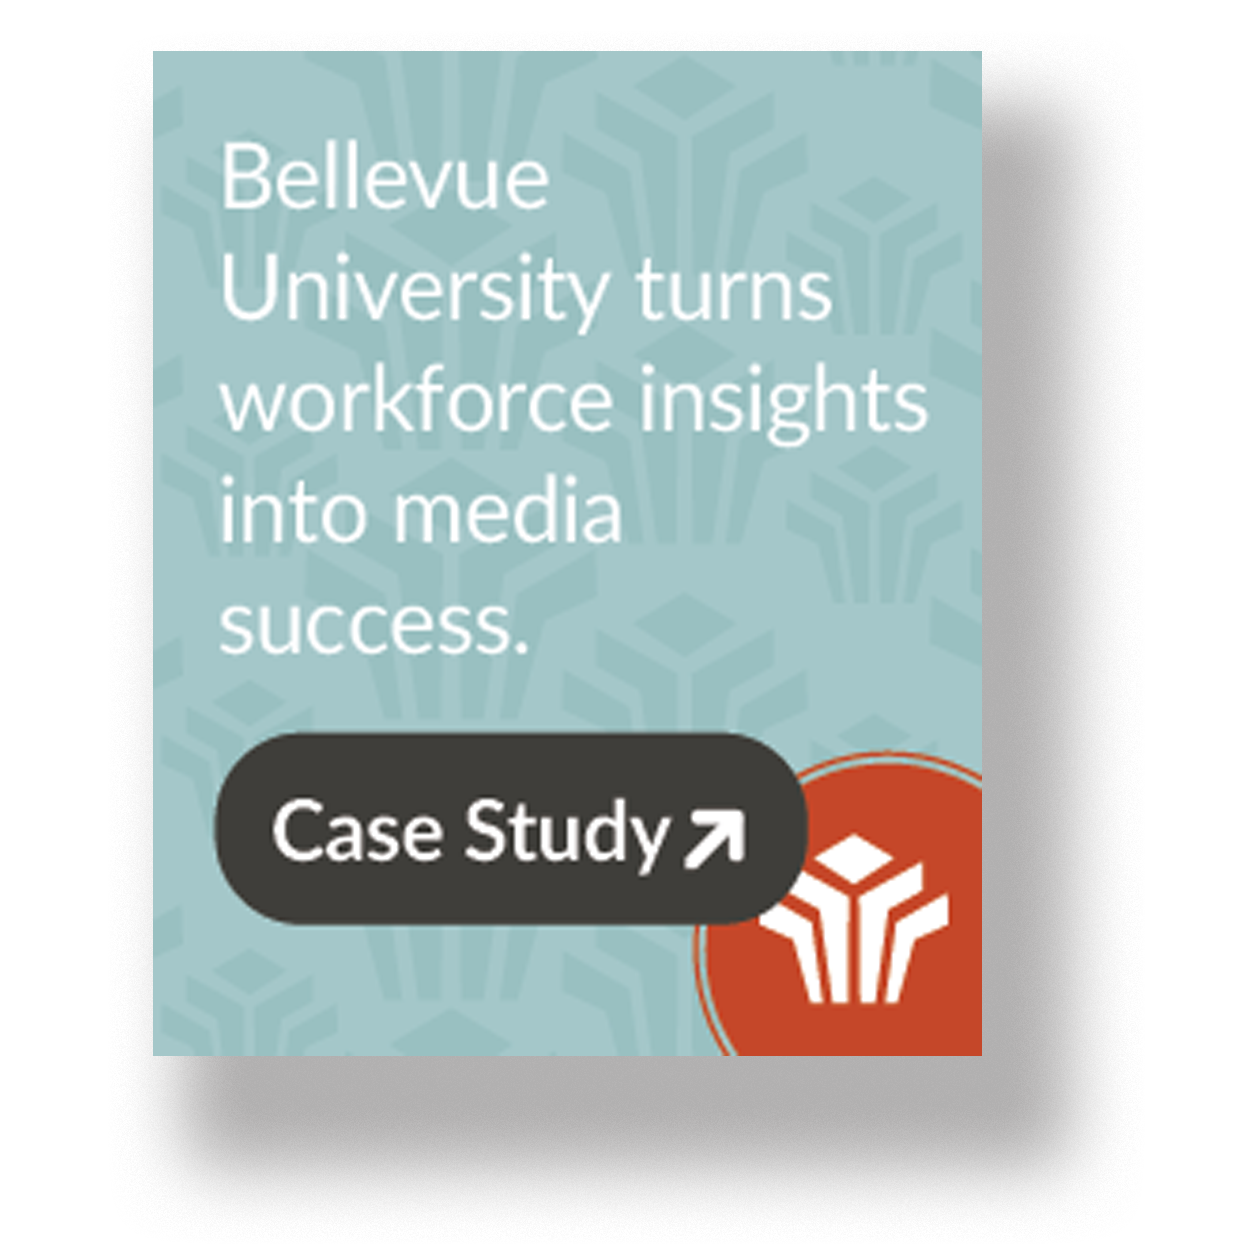 Jones case study bellevue university